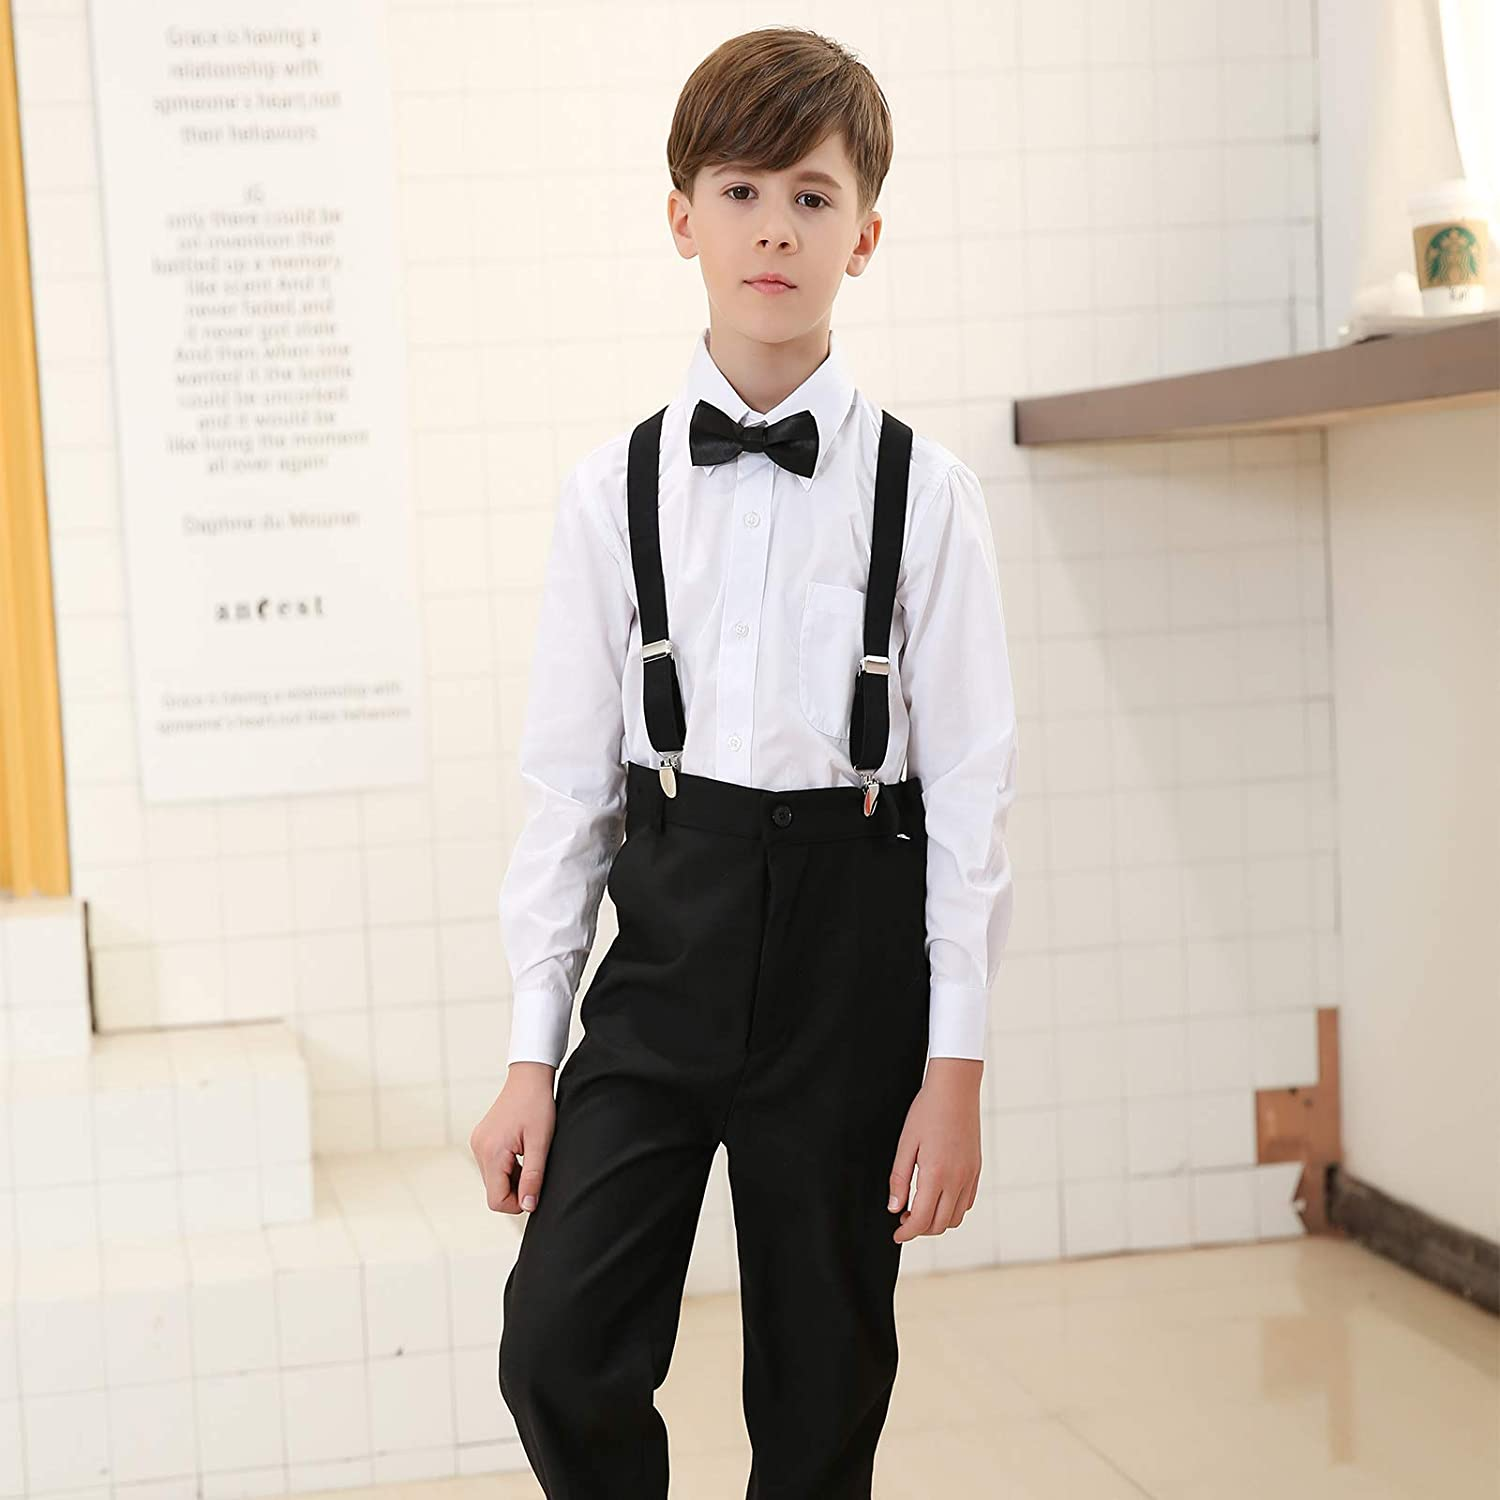 23.6 Inch Adjustable Classic Accessory Set for Boys Girls Kids Suspender Bow Tie Set 7 Months - 3 Years Wine red,